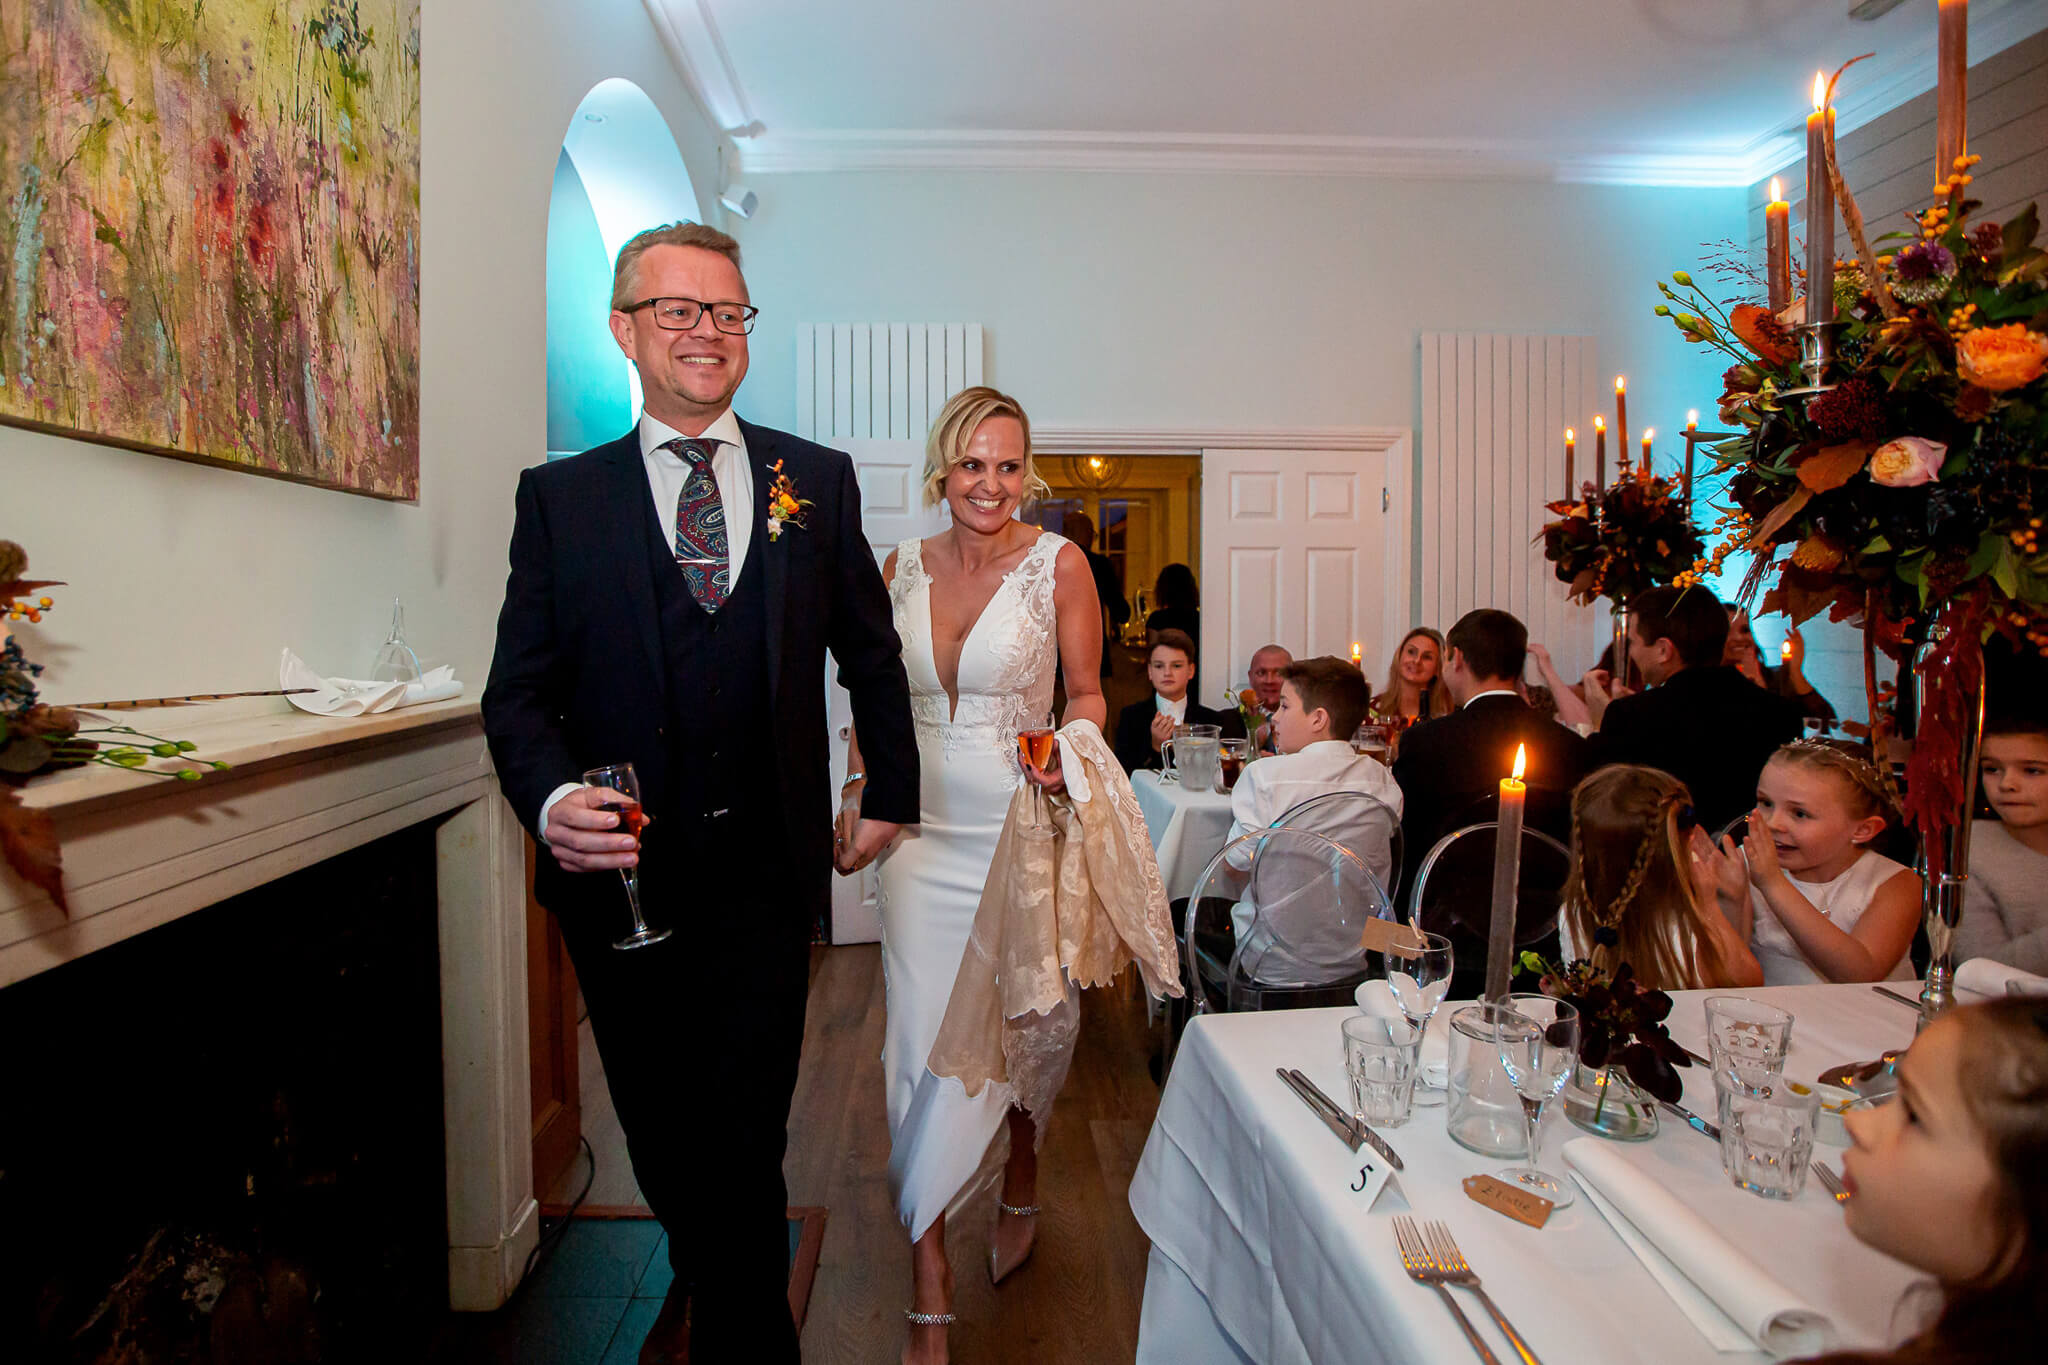 st-johns-litchfield-wedding-photography-stanbury-photography